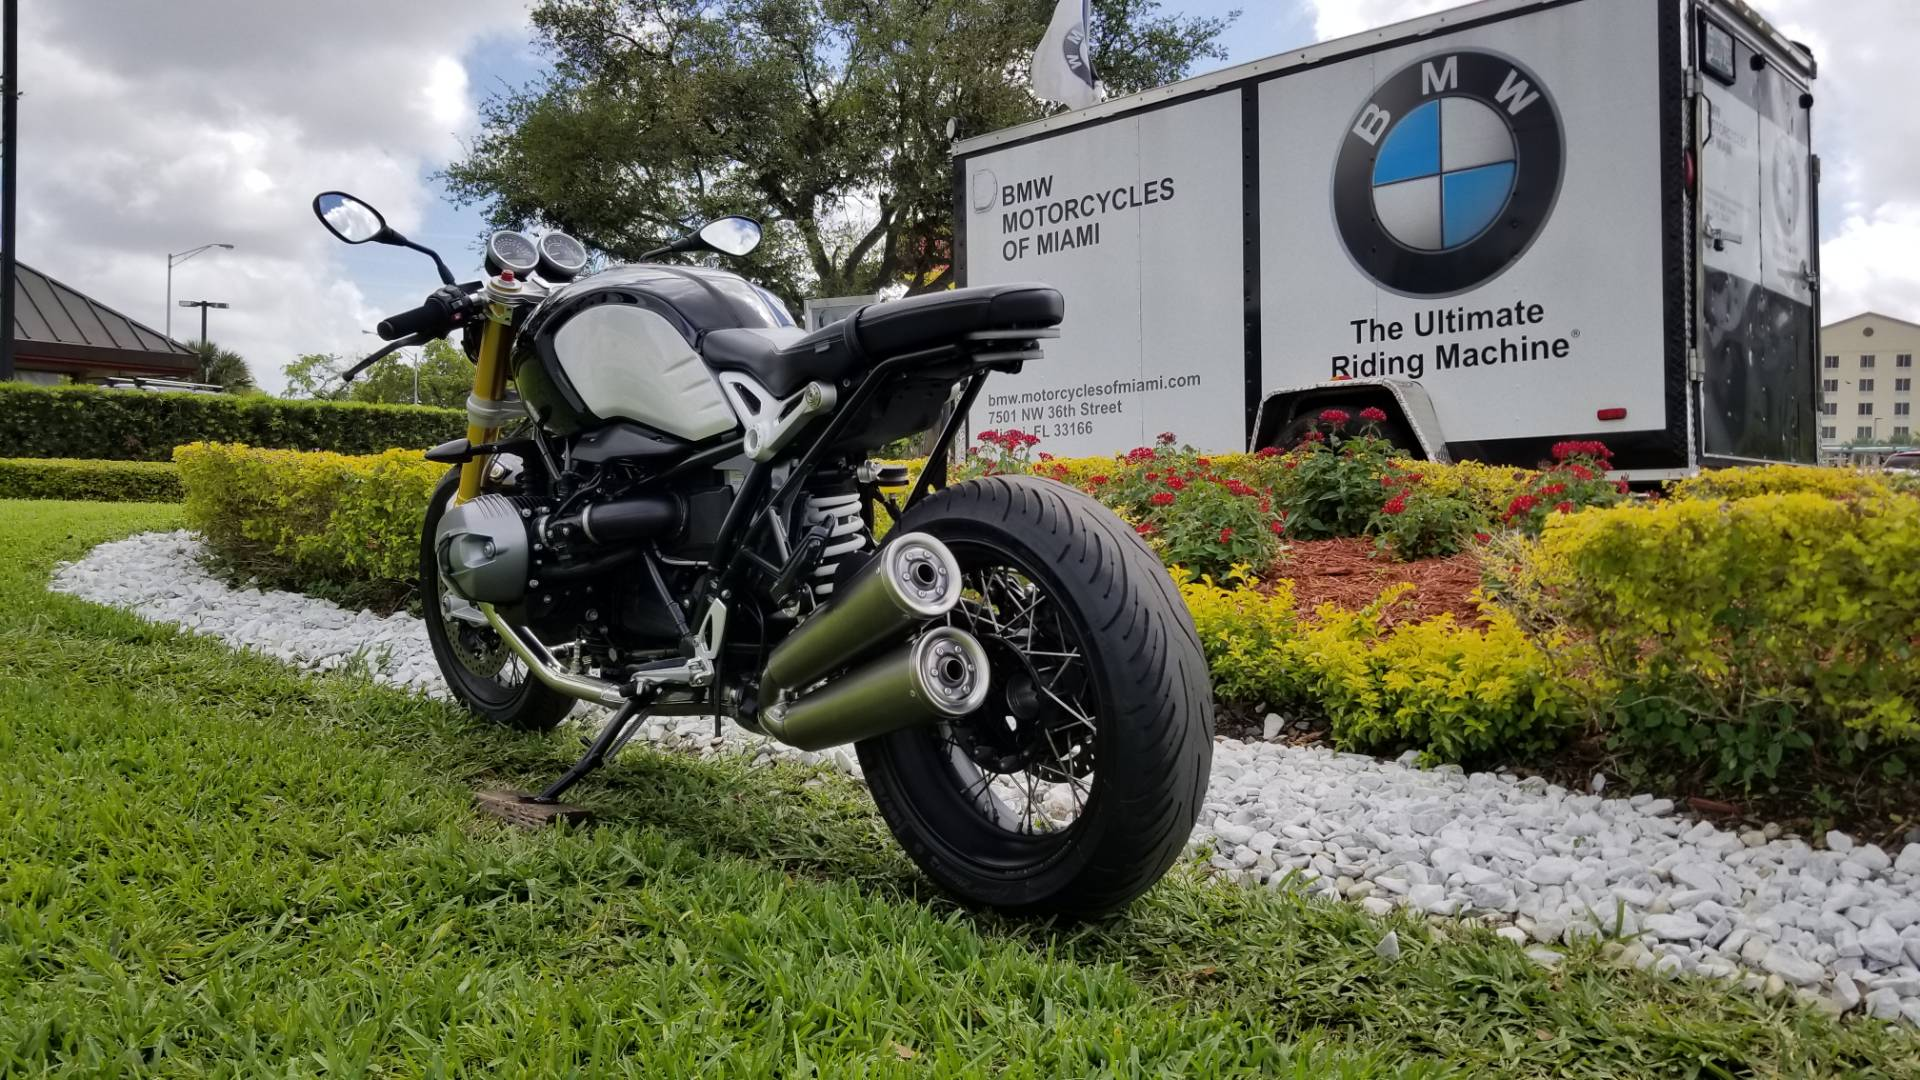 Used 2017 BMW R nine T For Sale, Pre owned BMW R nineT For Sale, BMW Motorcycle RnineT, BMW Motorcycles of Miami, Motorcycles of Miami, Motorcycles Miami - Photo 10